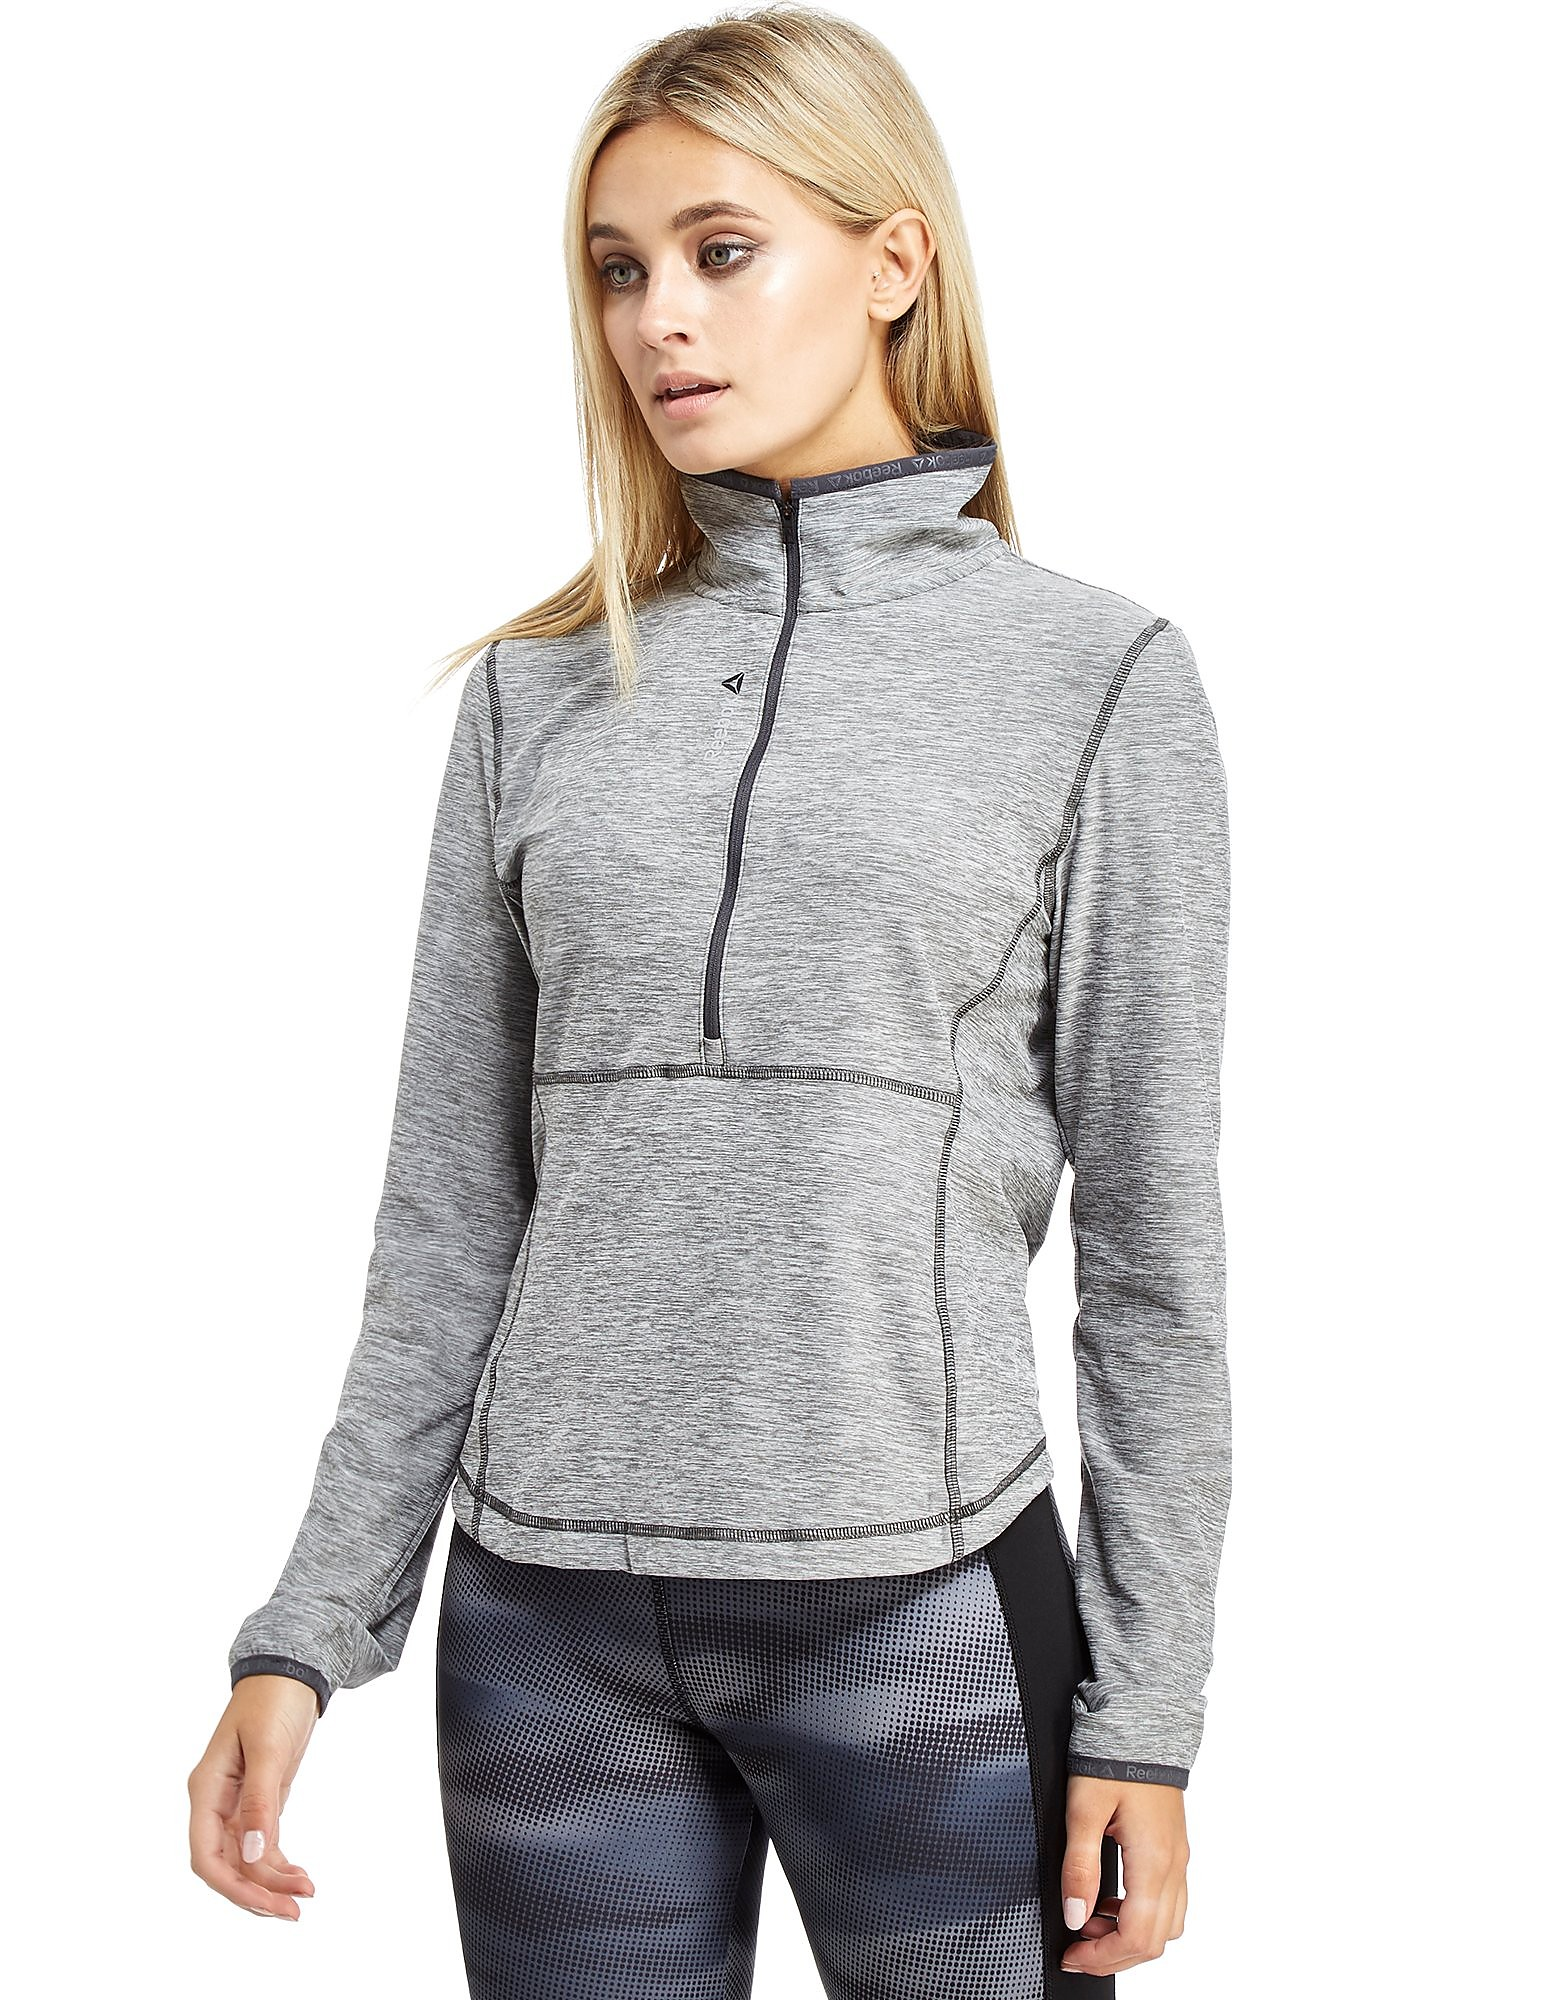 Reebok Workout Ready Longsleeve 1/2 Zip Top